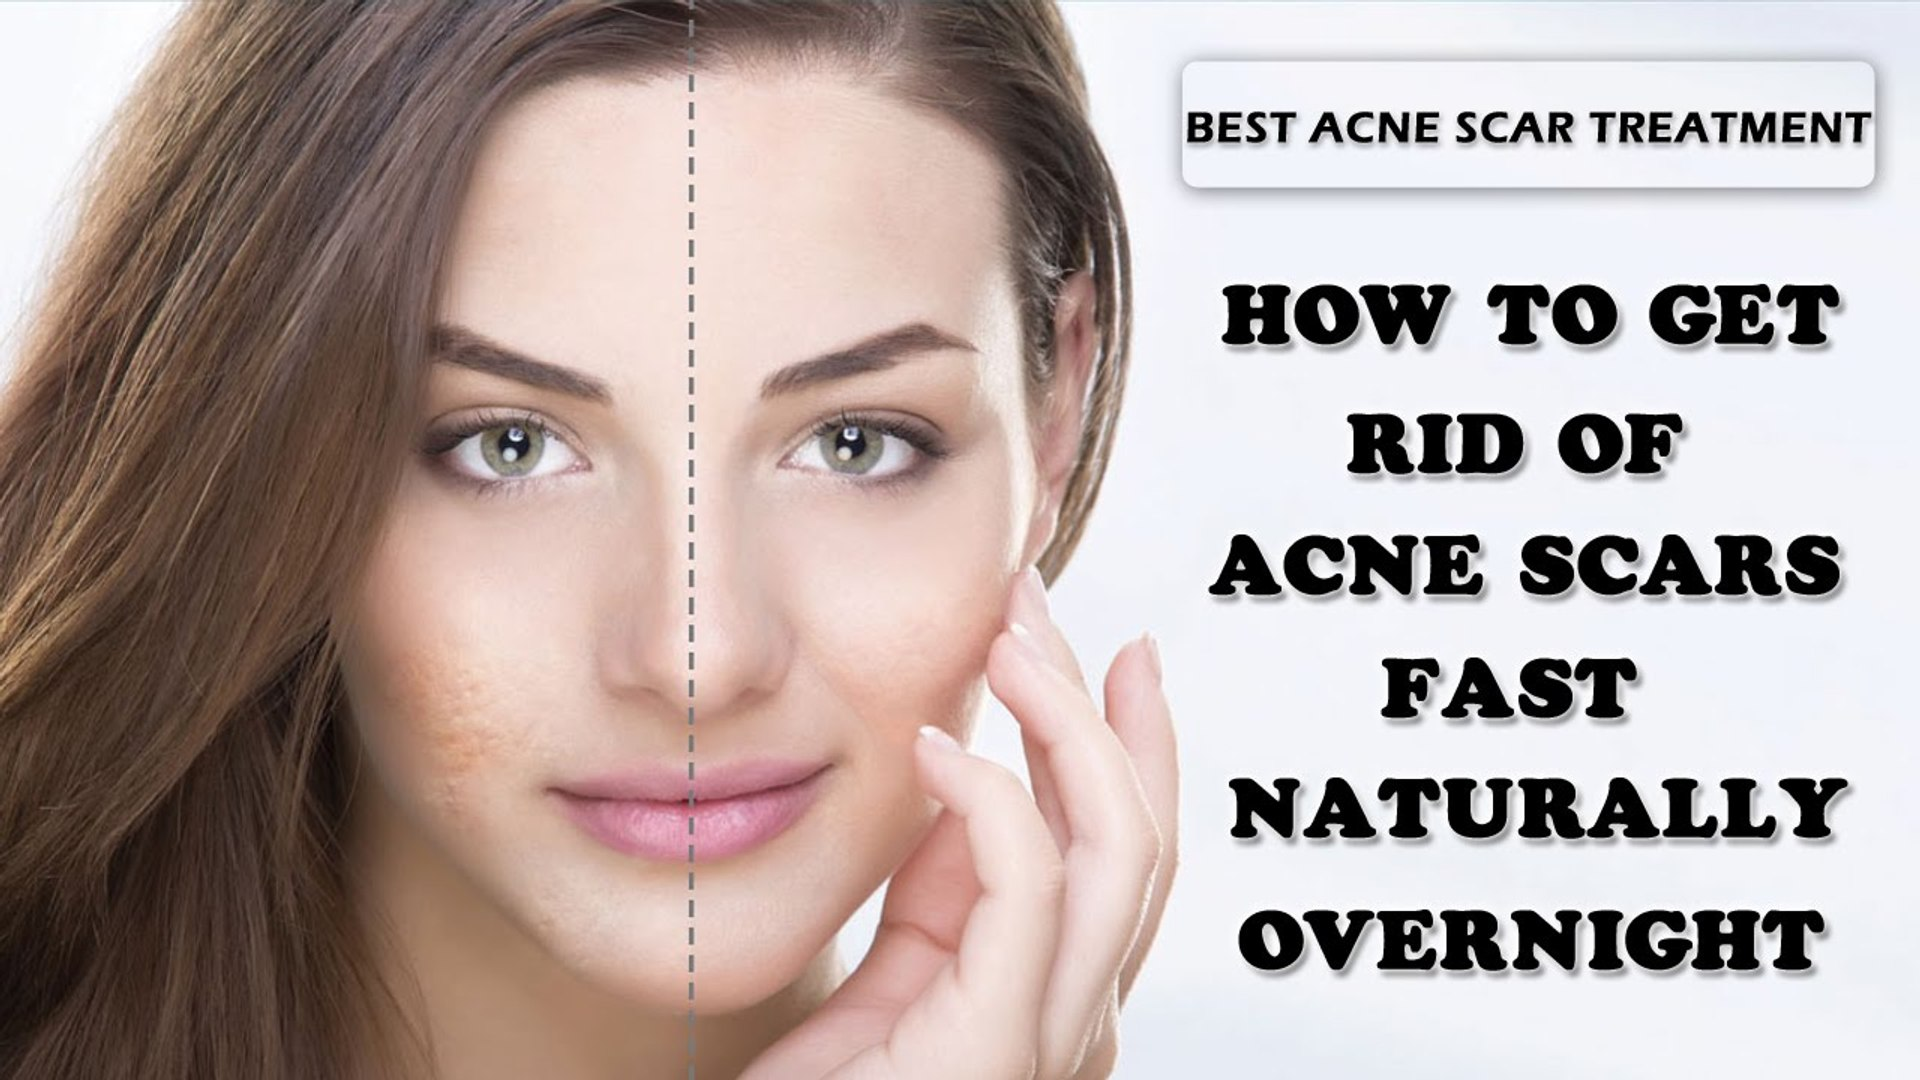 Get Rid Of Acne Scars Fast How To Get Rid Of Acne Scars Fast Naturally Overnight Video Dailymotion